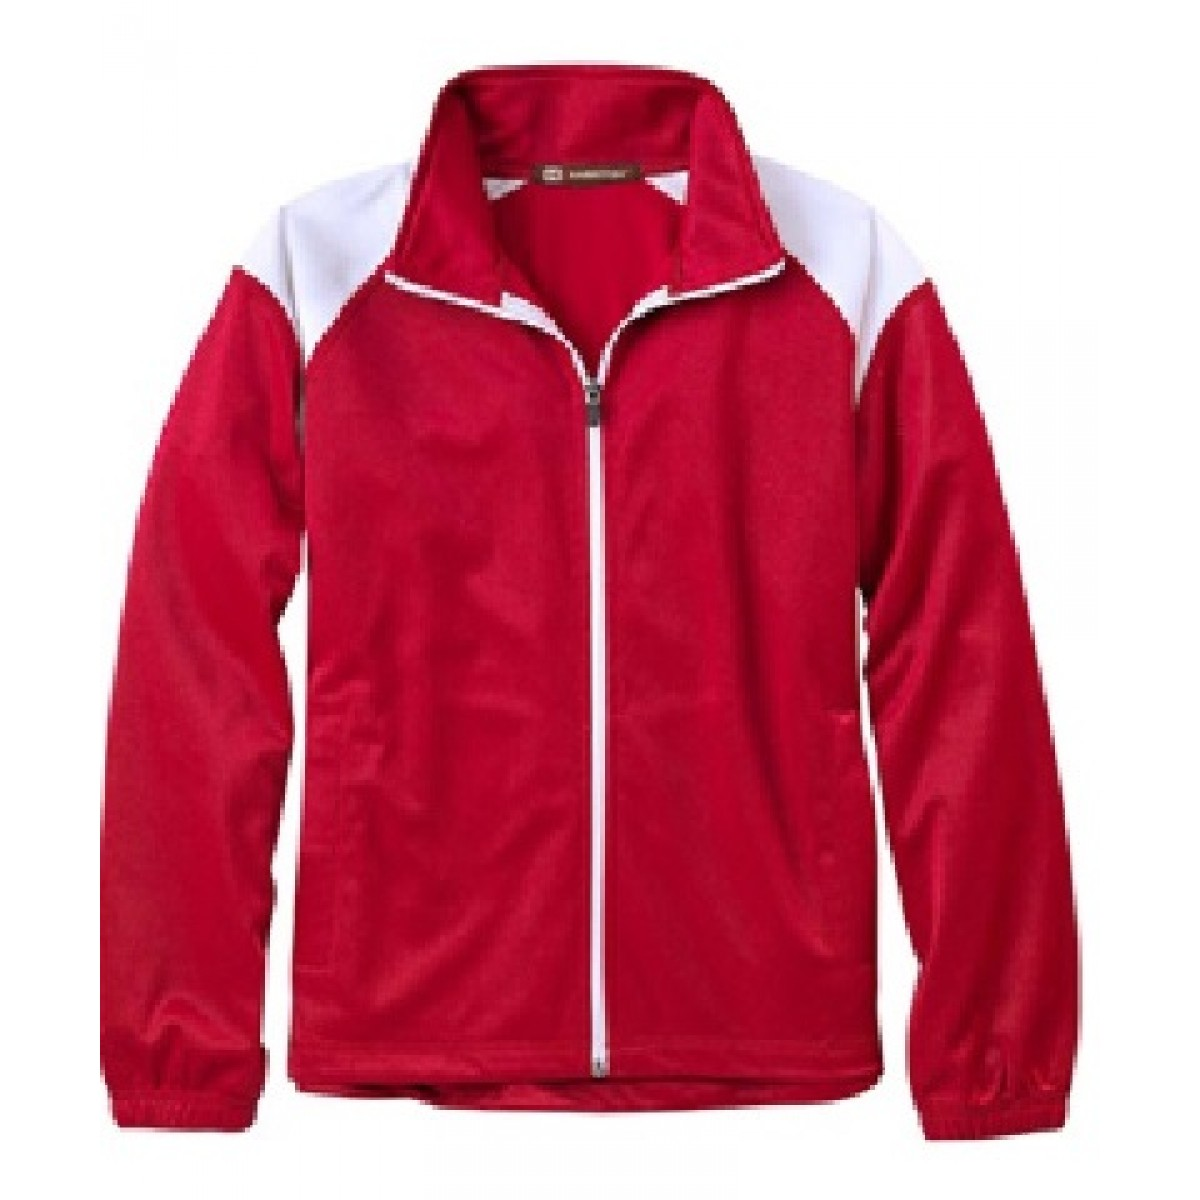 Embroidered Red Tricot Track Jacket-Red-L